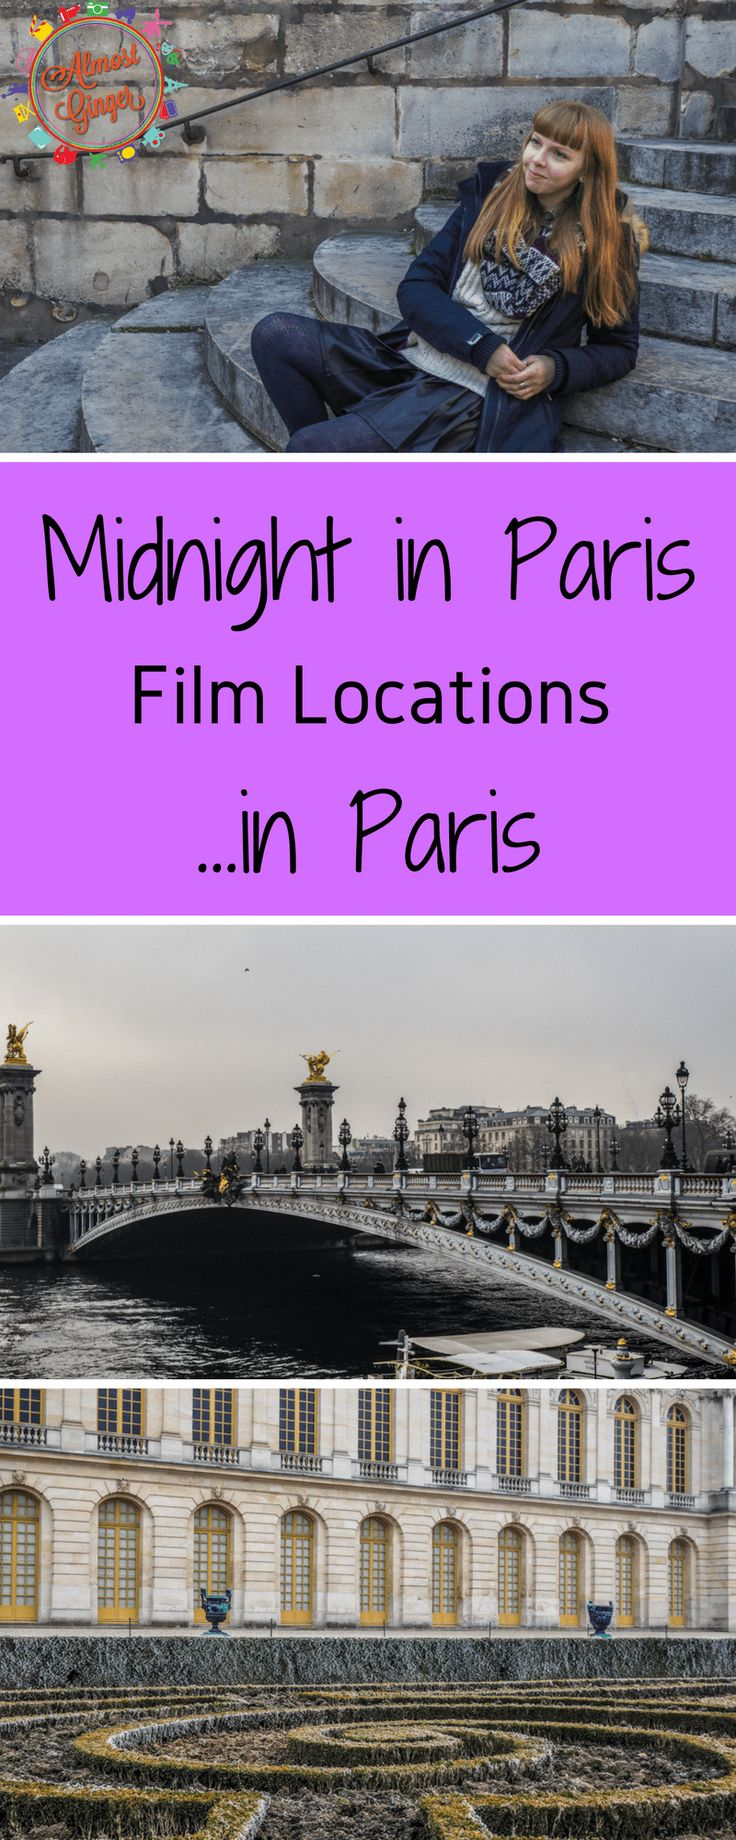 Midnight in Paris Film Locations in Paris include the Moulin Rouge, Sacre Coeur, Shakespeare and Company Bookshop, Pont de Alexandre III, Palace of Versailles, Giverny, Maxim's, and so many others as Midnight in Paris Filming Locations | Paris Film Locations | almostginger.com